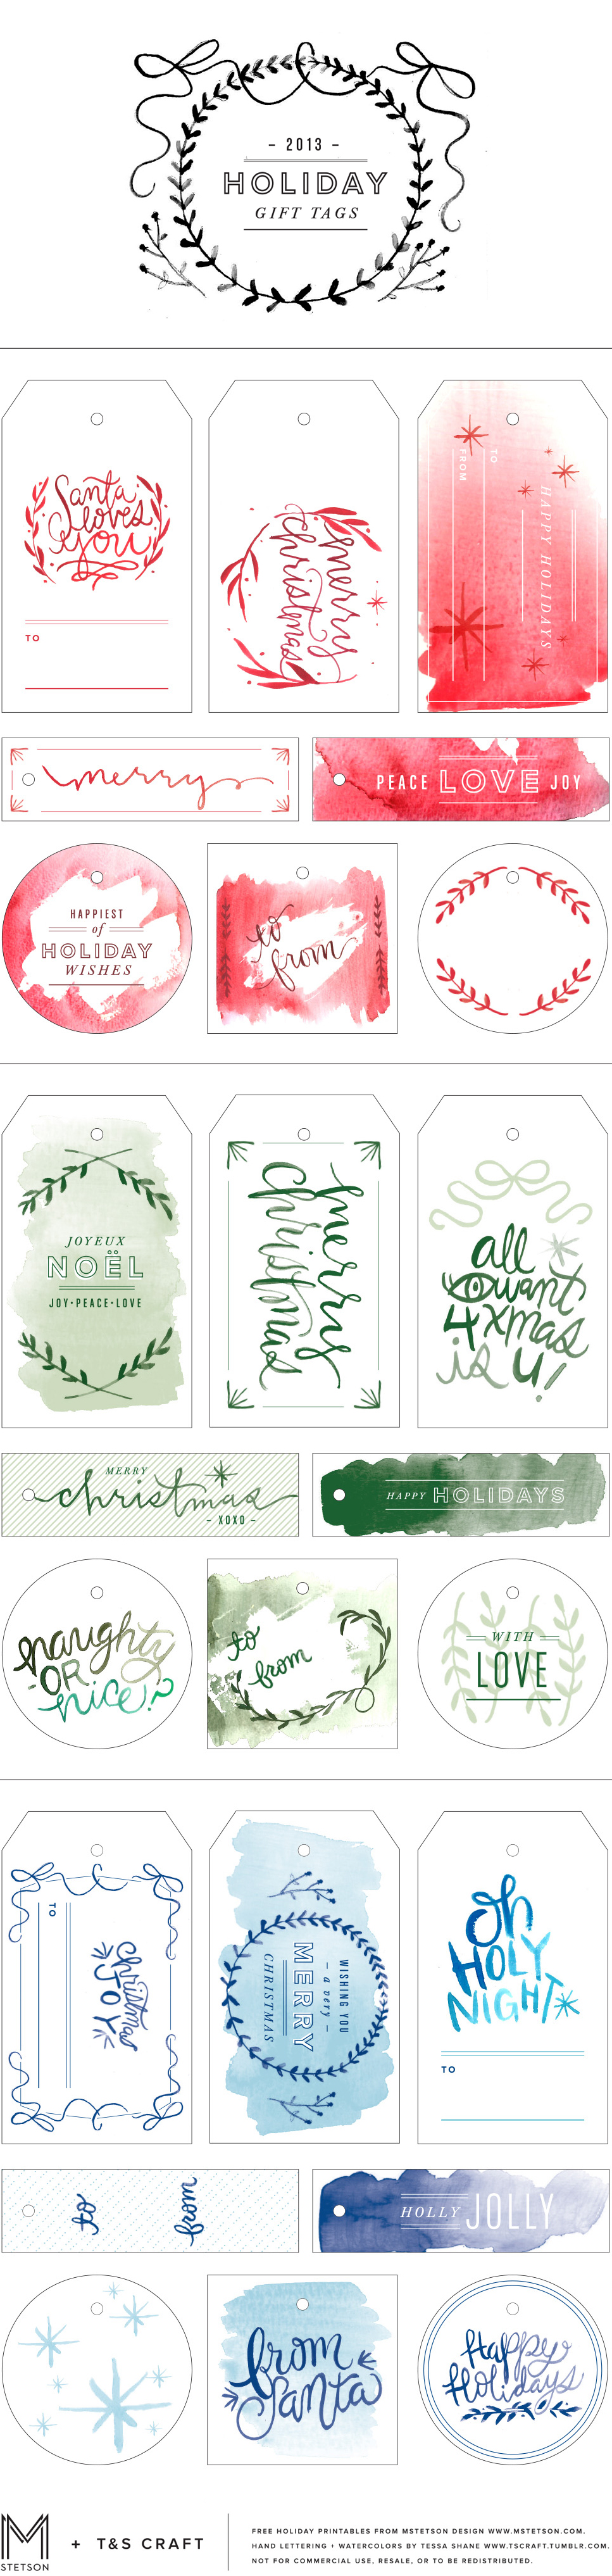 free watercolor hoilday christmas gift tag printables downloadable via mstetson design and t&s craft